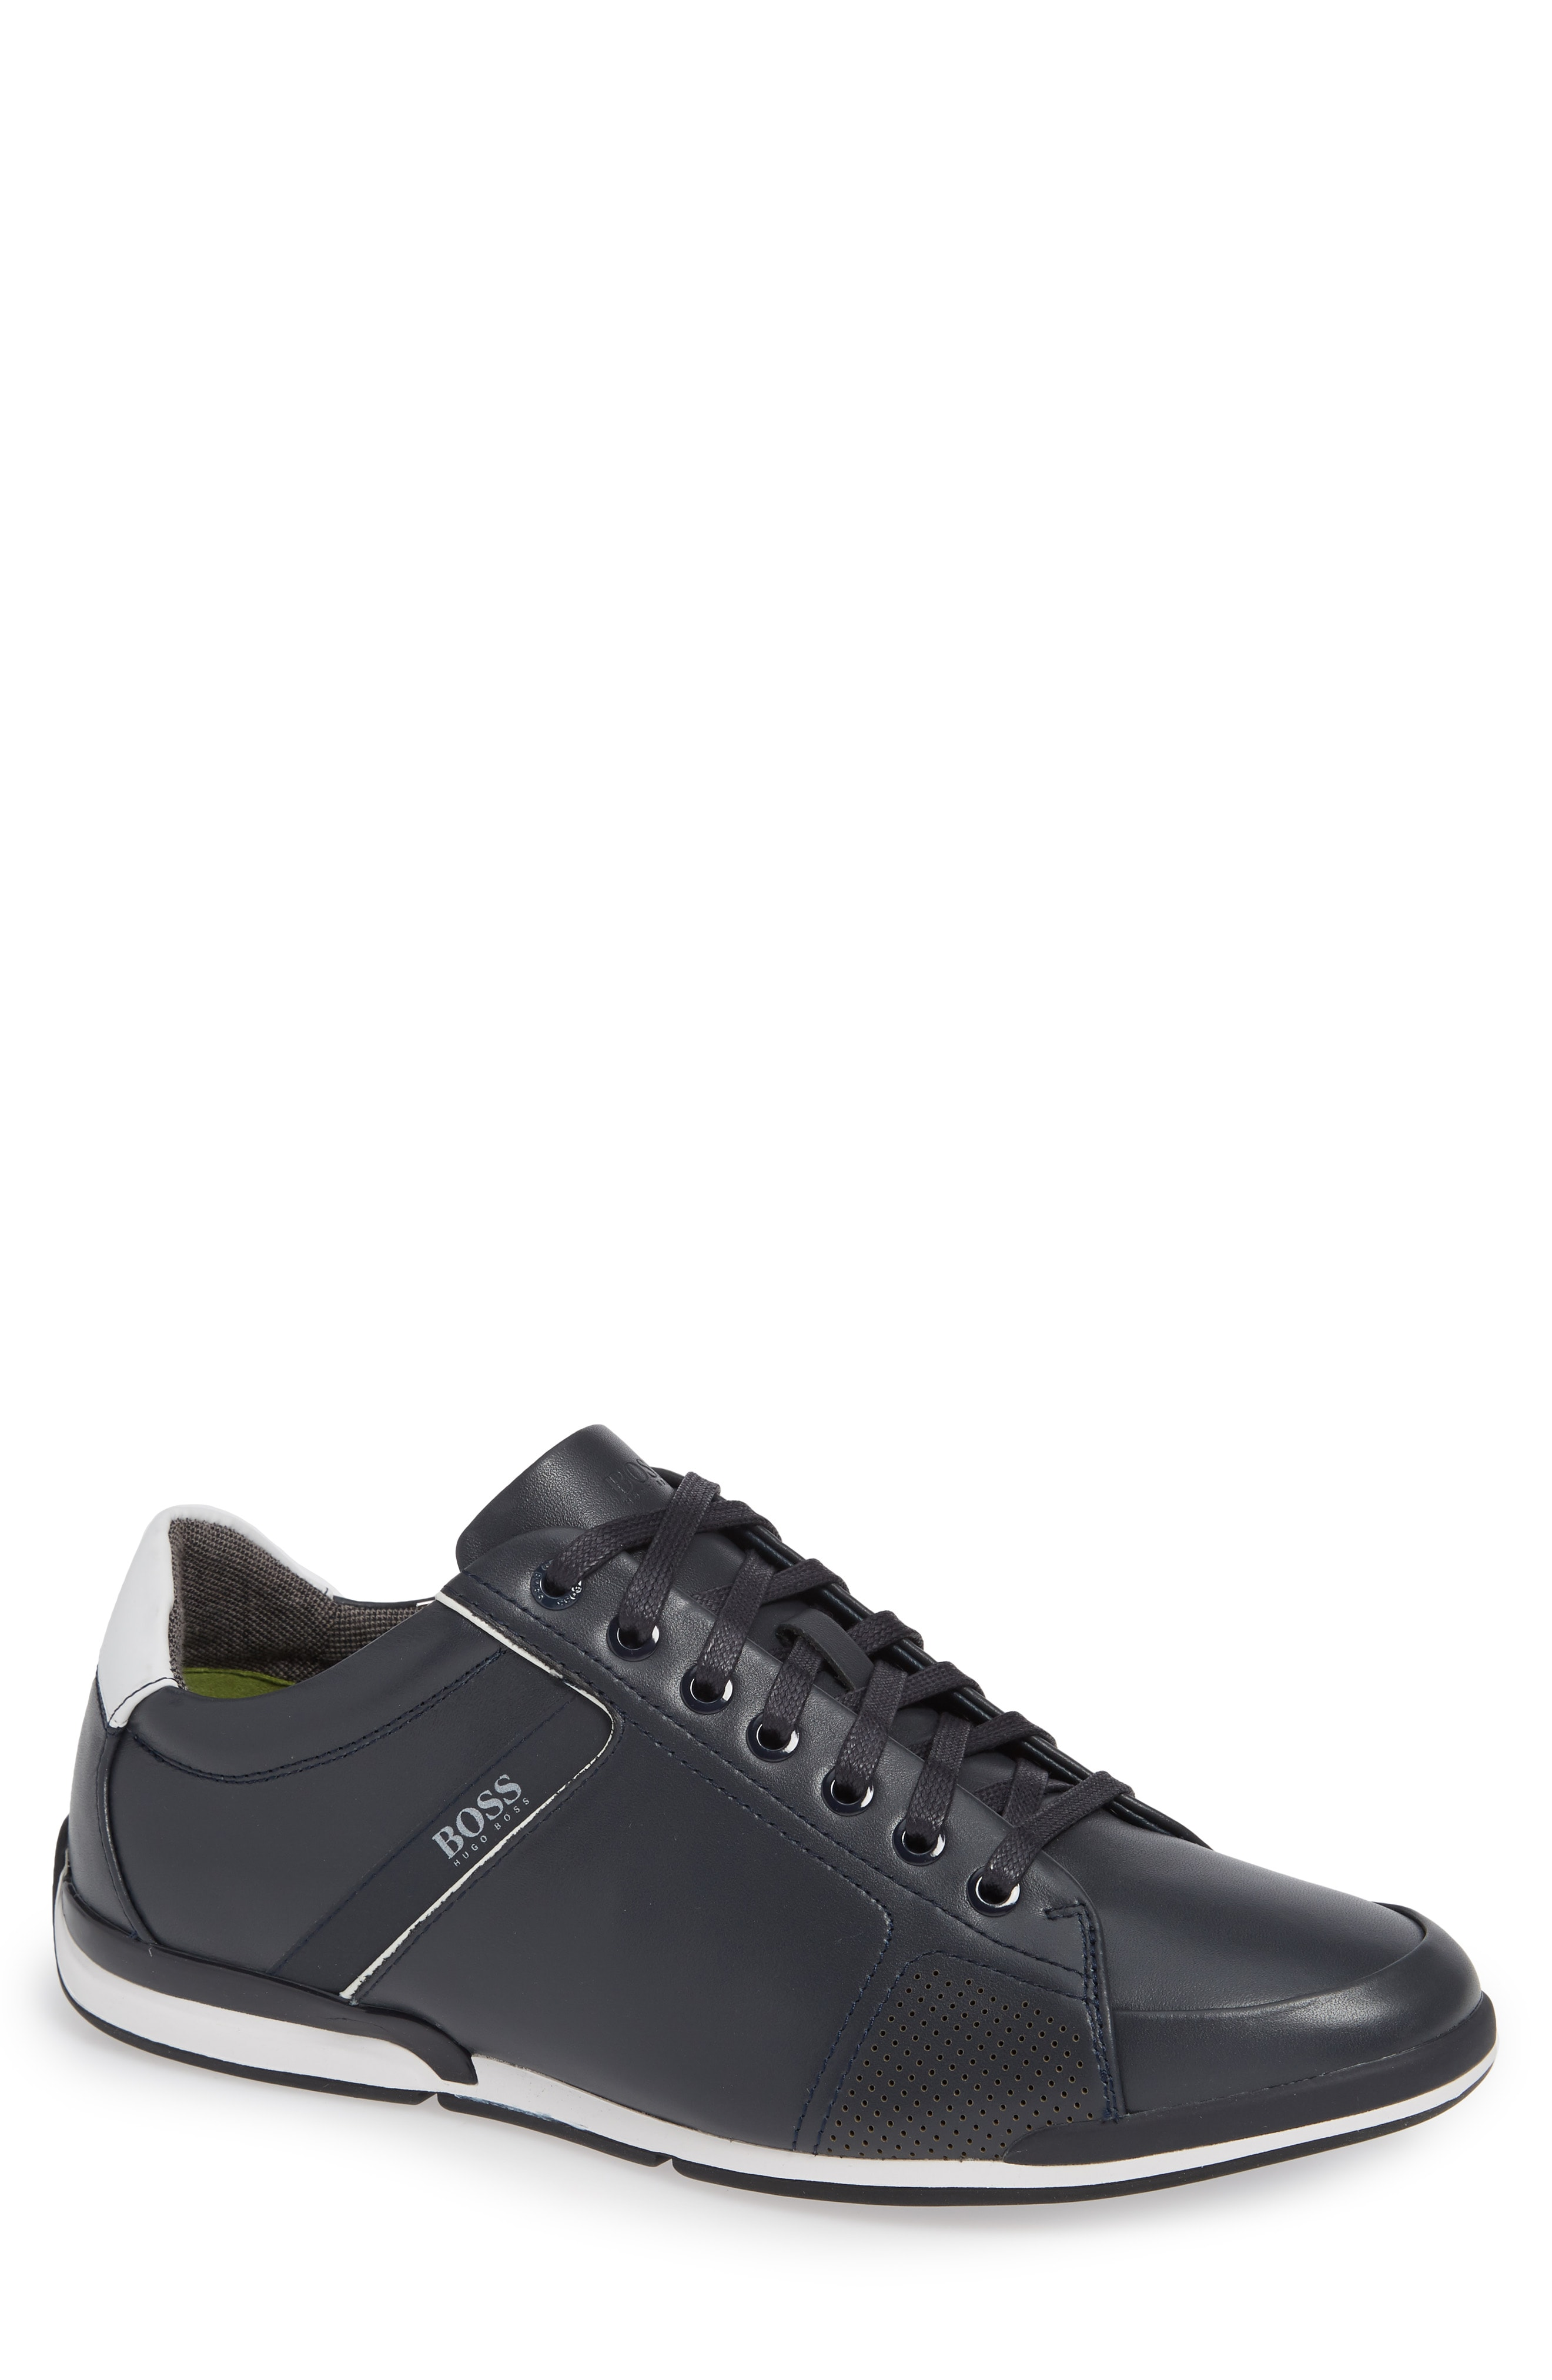 hugo boss shoes | Nordstrom